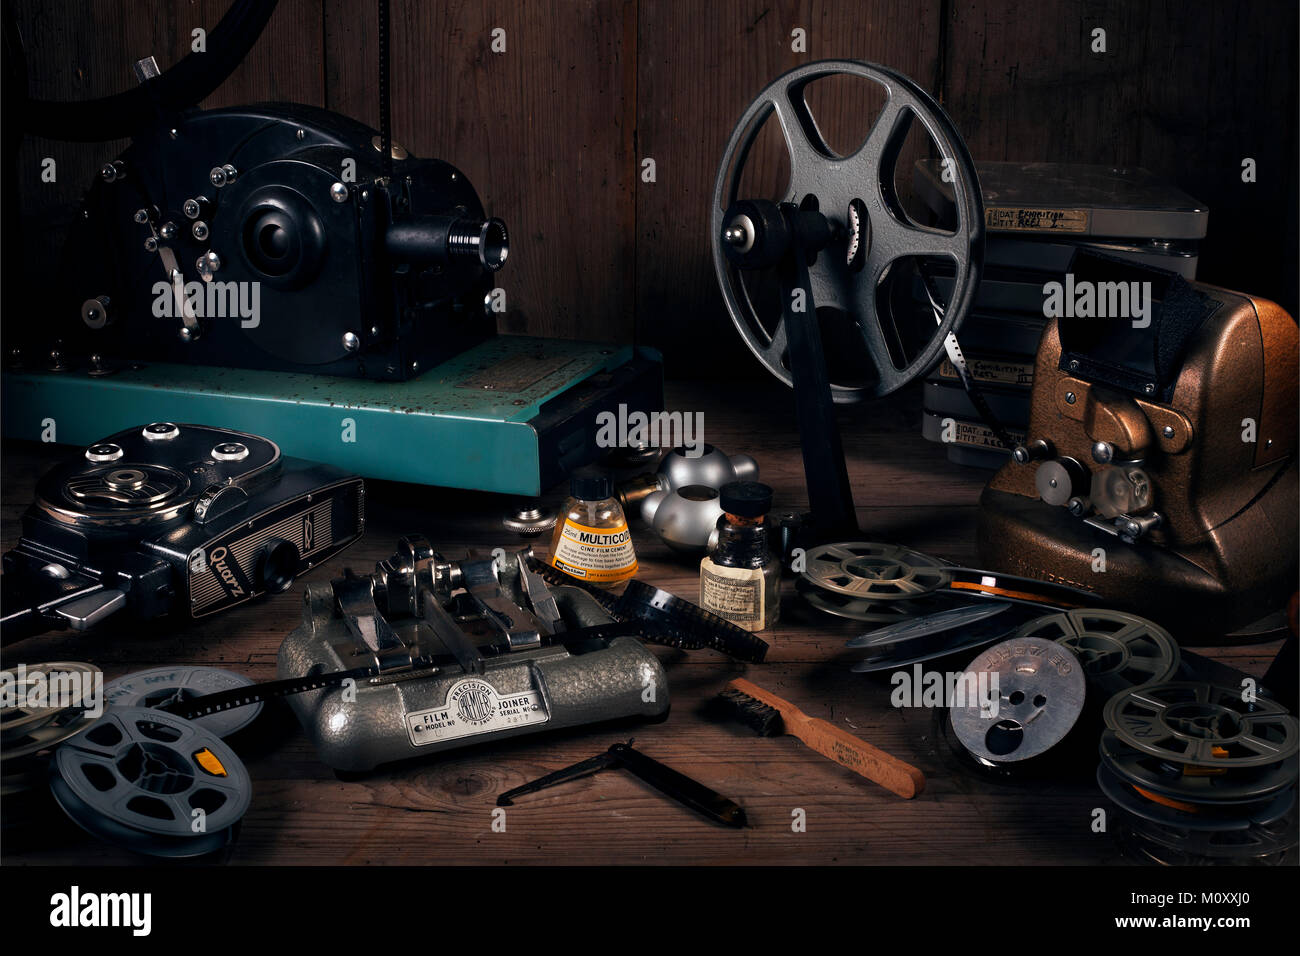 Still life Cine film equipment. Home cinema equipment from 1930s to 1950s. - Stock Image